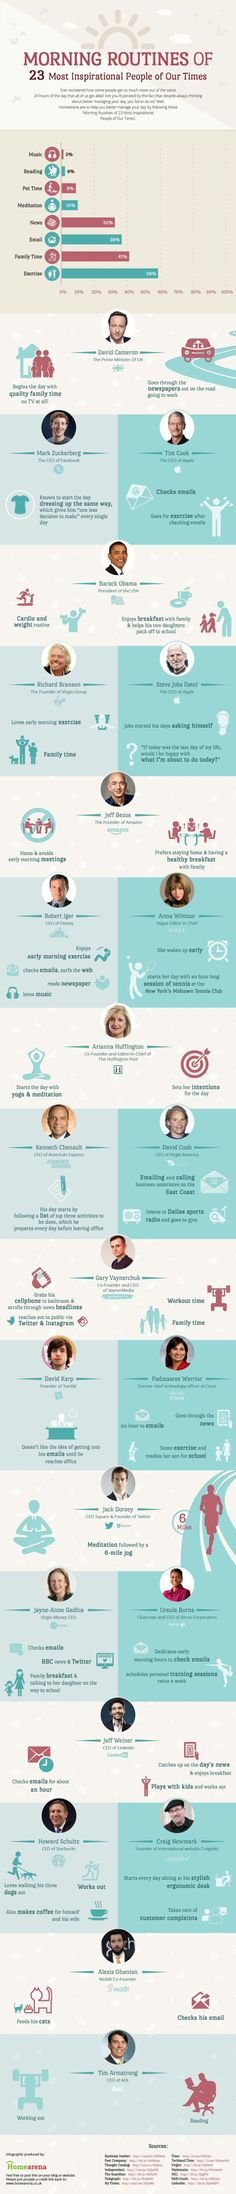 Start The Right Way! Morning Routines of the World's Most Famous People #Infographic